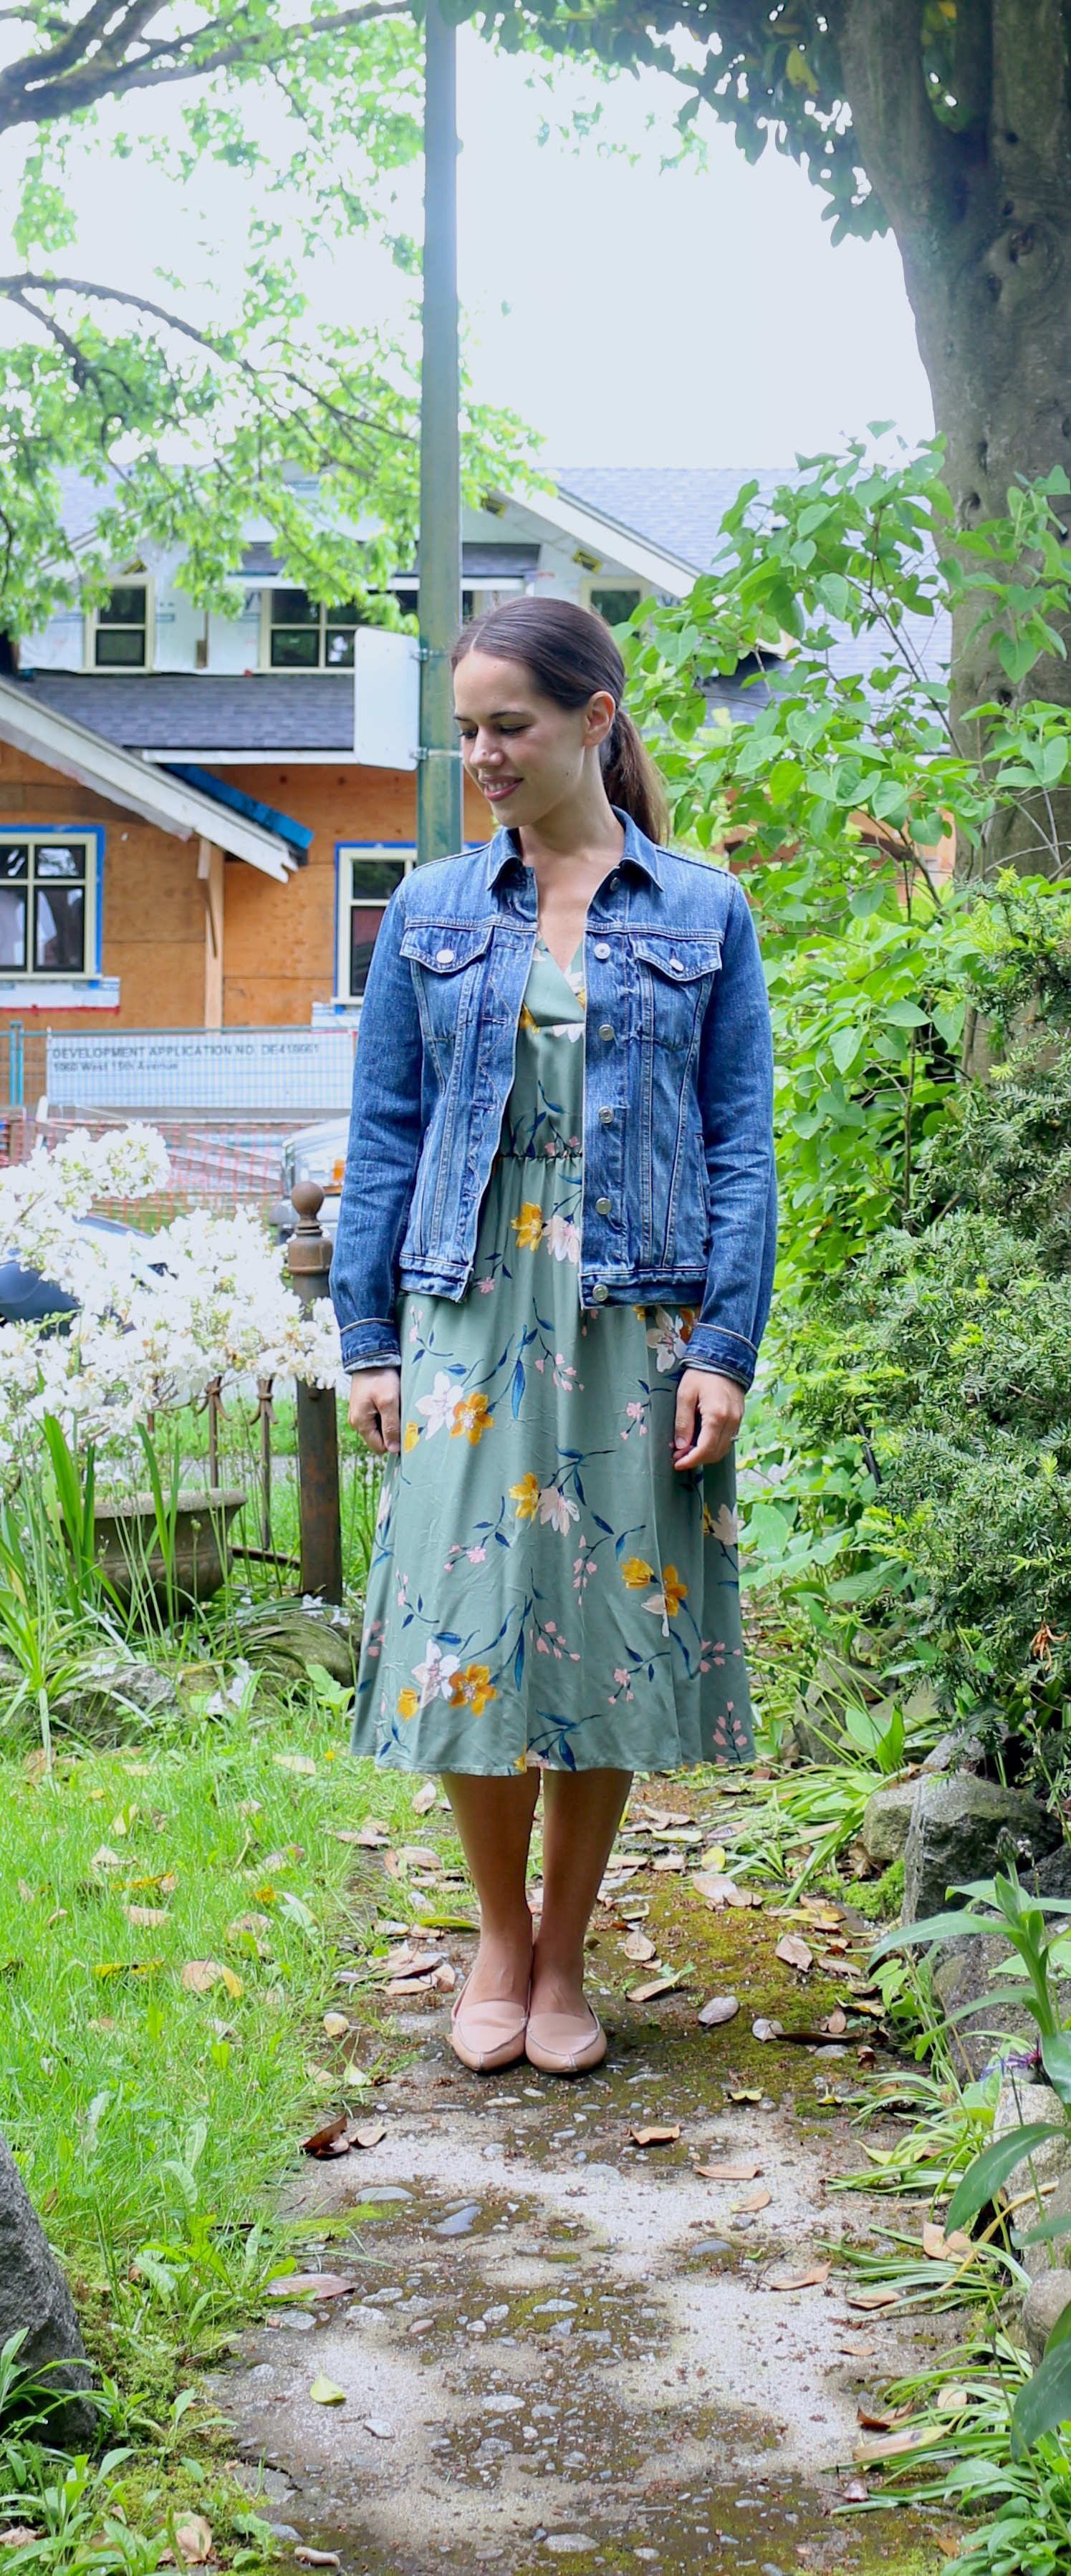 Jules in Flats - Floral Midi Dress with Denim Jacket (Easy Work from Home Outfit)